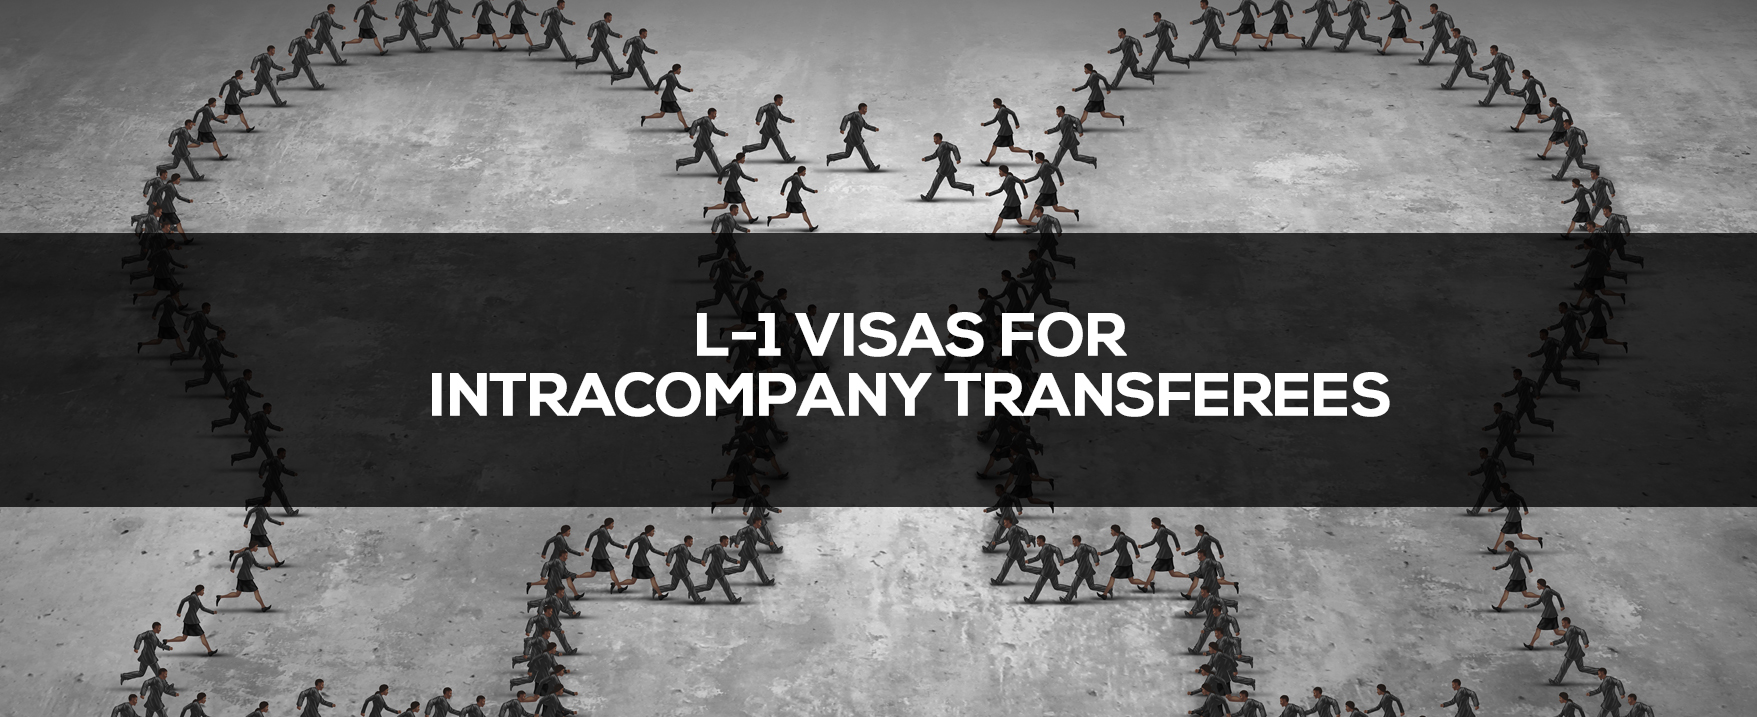 L-1 Visas for Intracompany Transferees